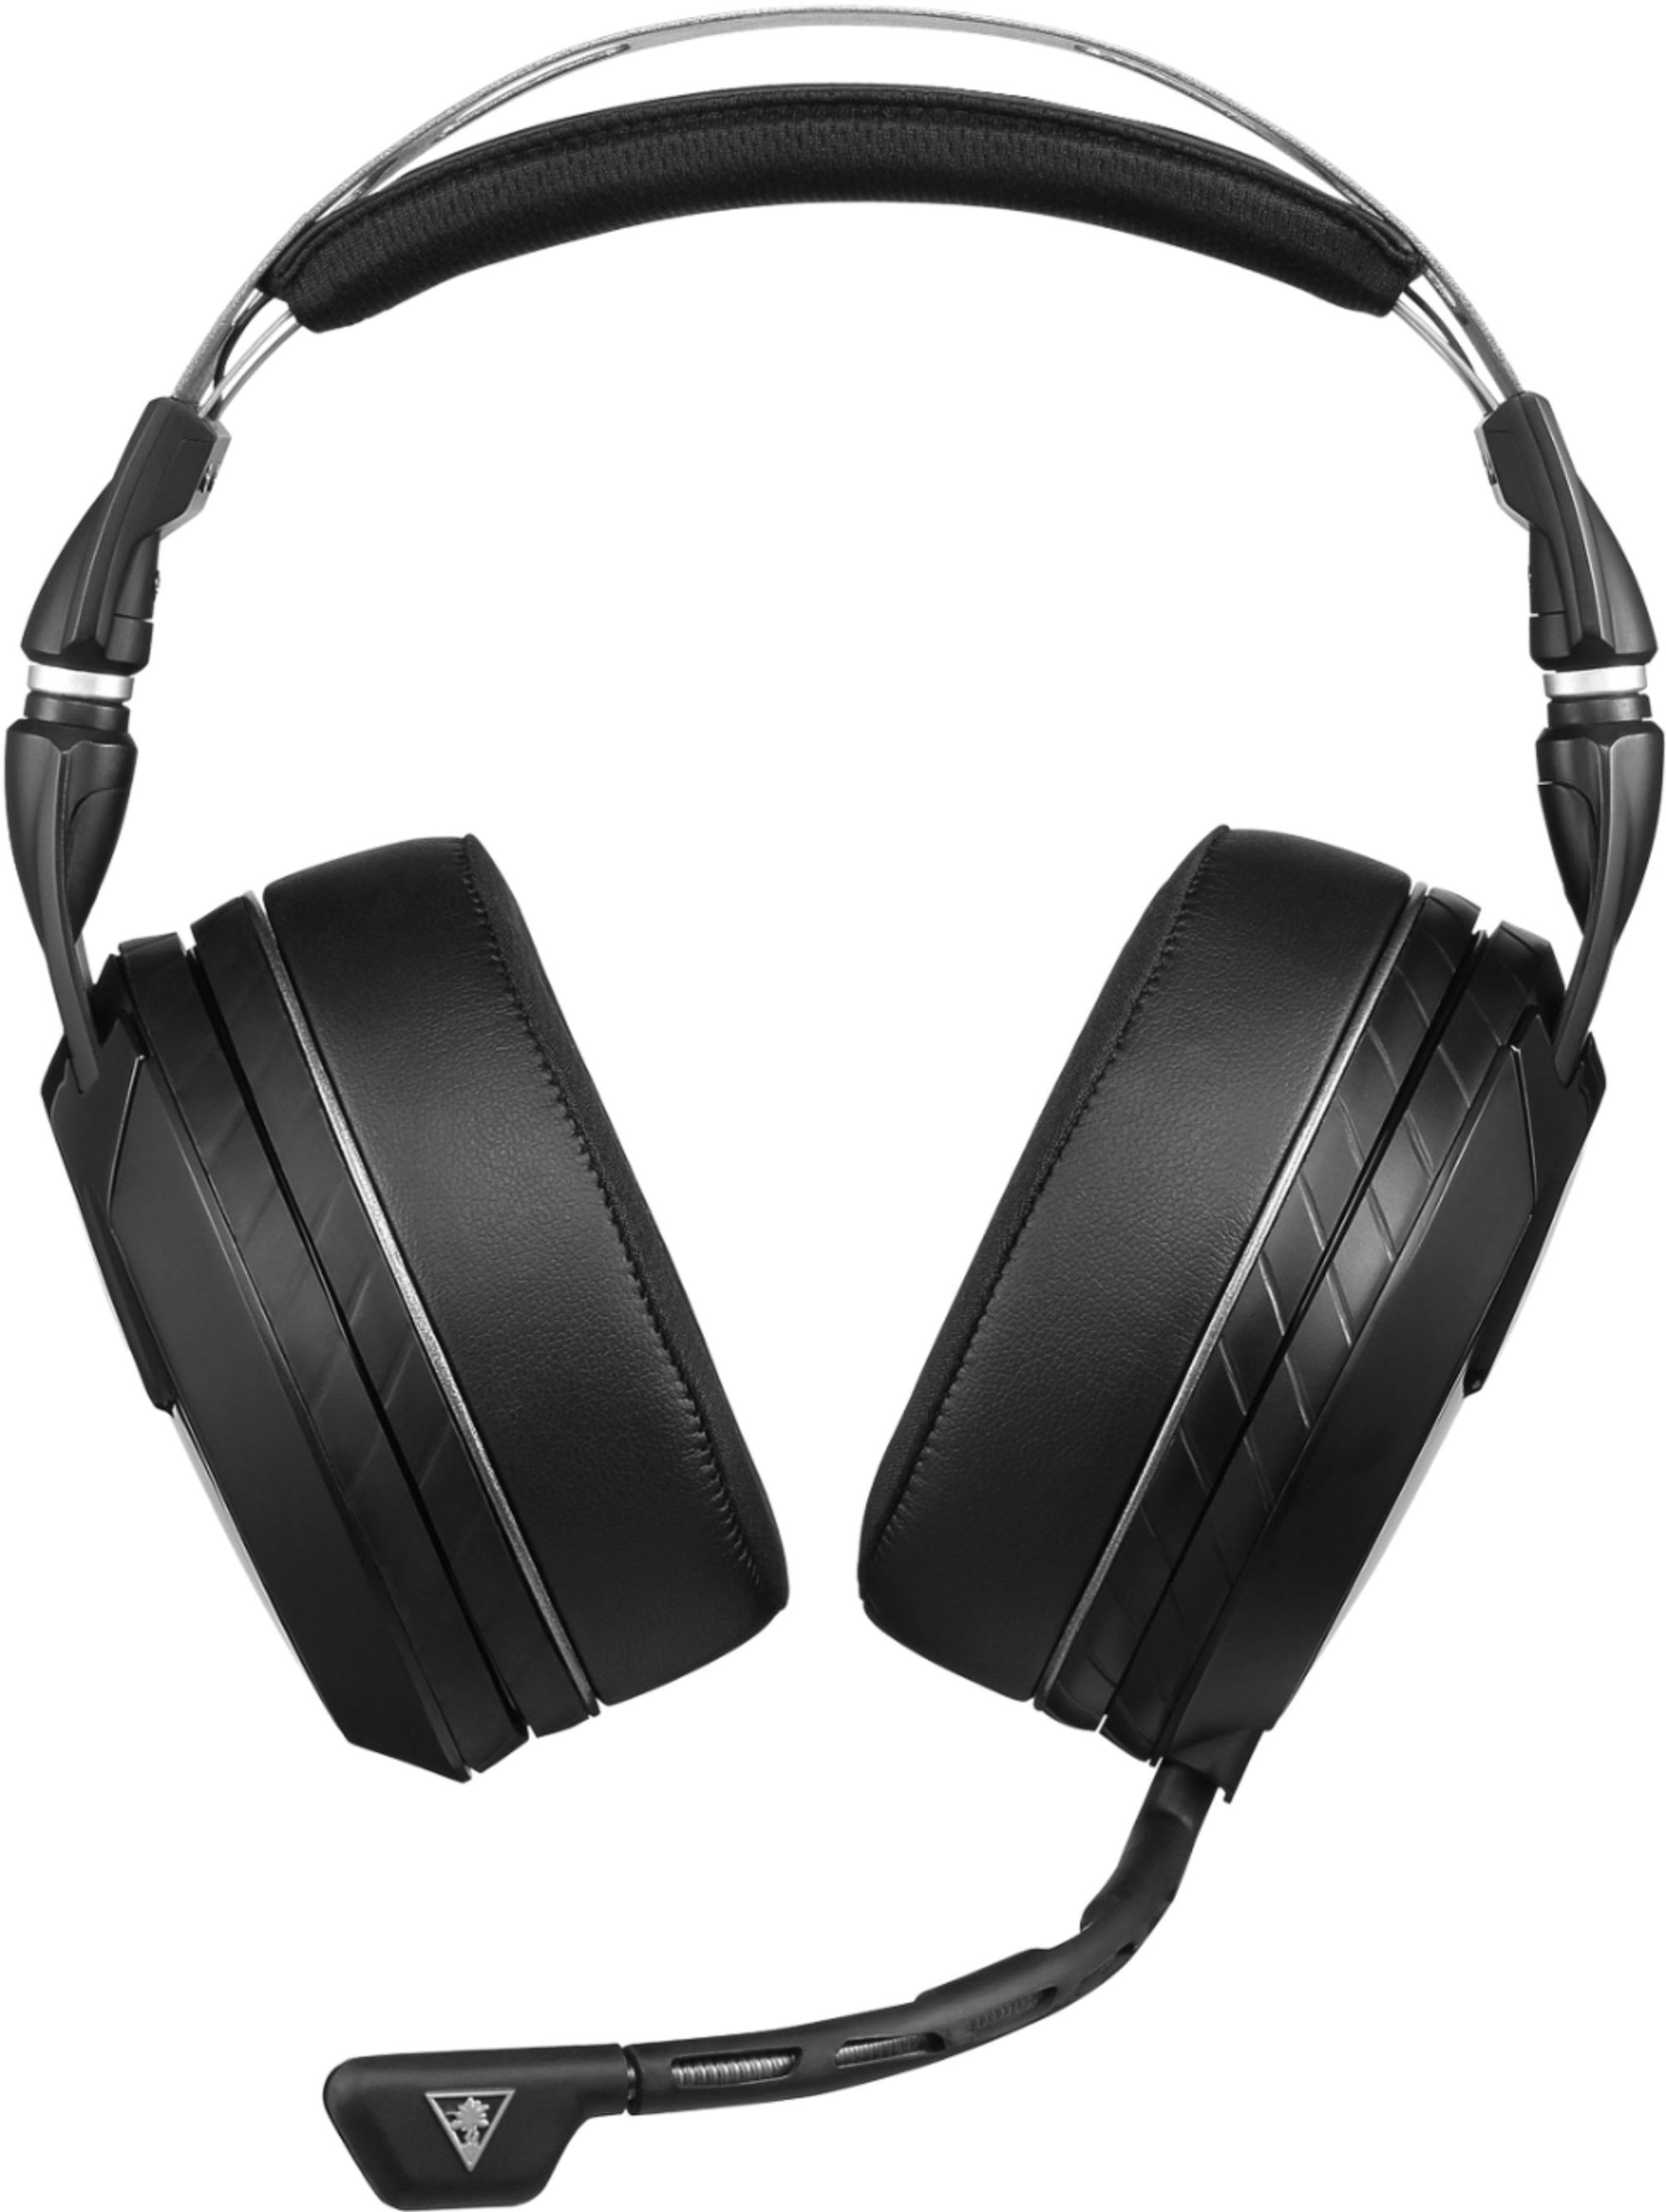 hight resolution of  turtle beach elite atlas wired stereo gaming headset for pc black alt view zoom 11